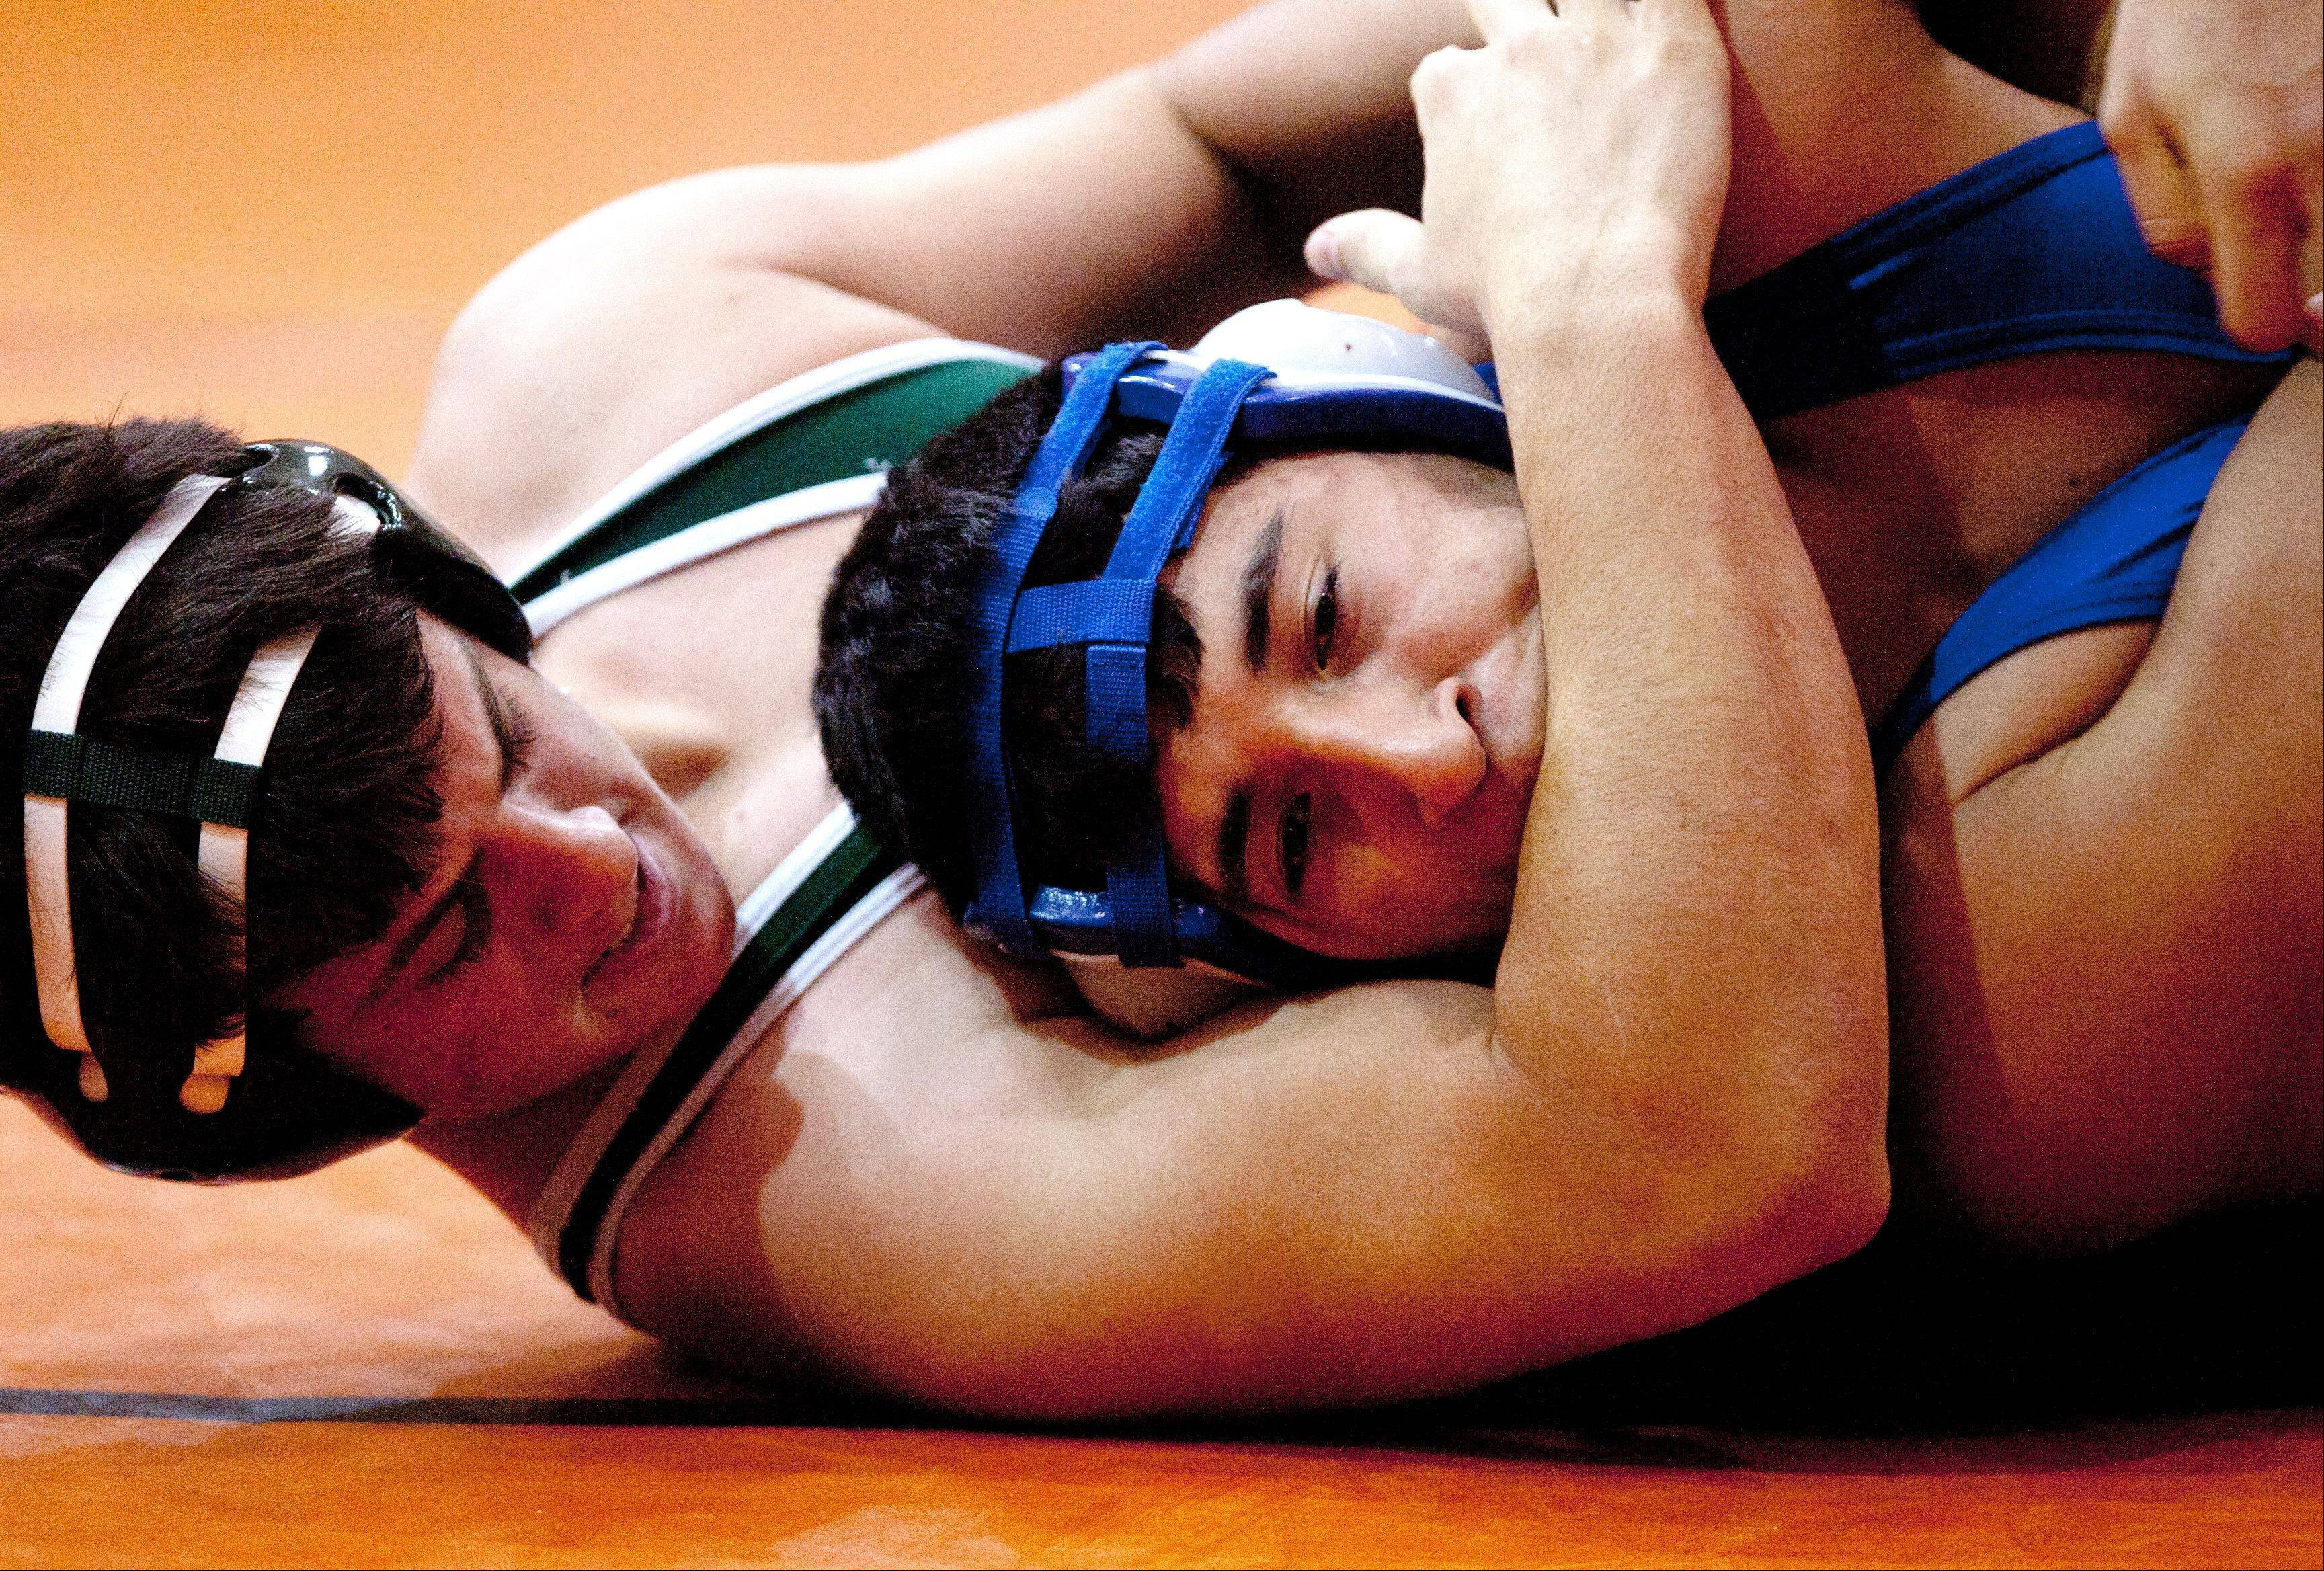 Glenbard West's Jordan Hassan, left, wins by technical fall over Fenton's Juan Alfaro, right, at the 182 weight, during the Wheaton Warrenville South Wrestling quad.